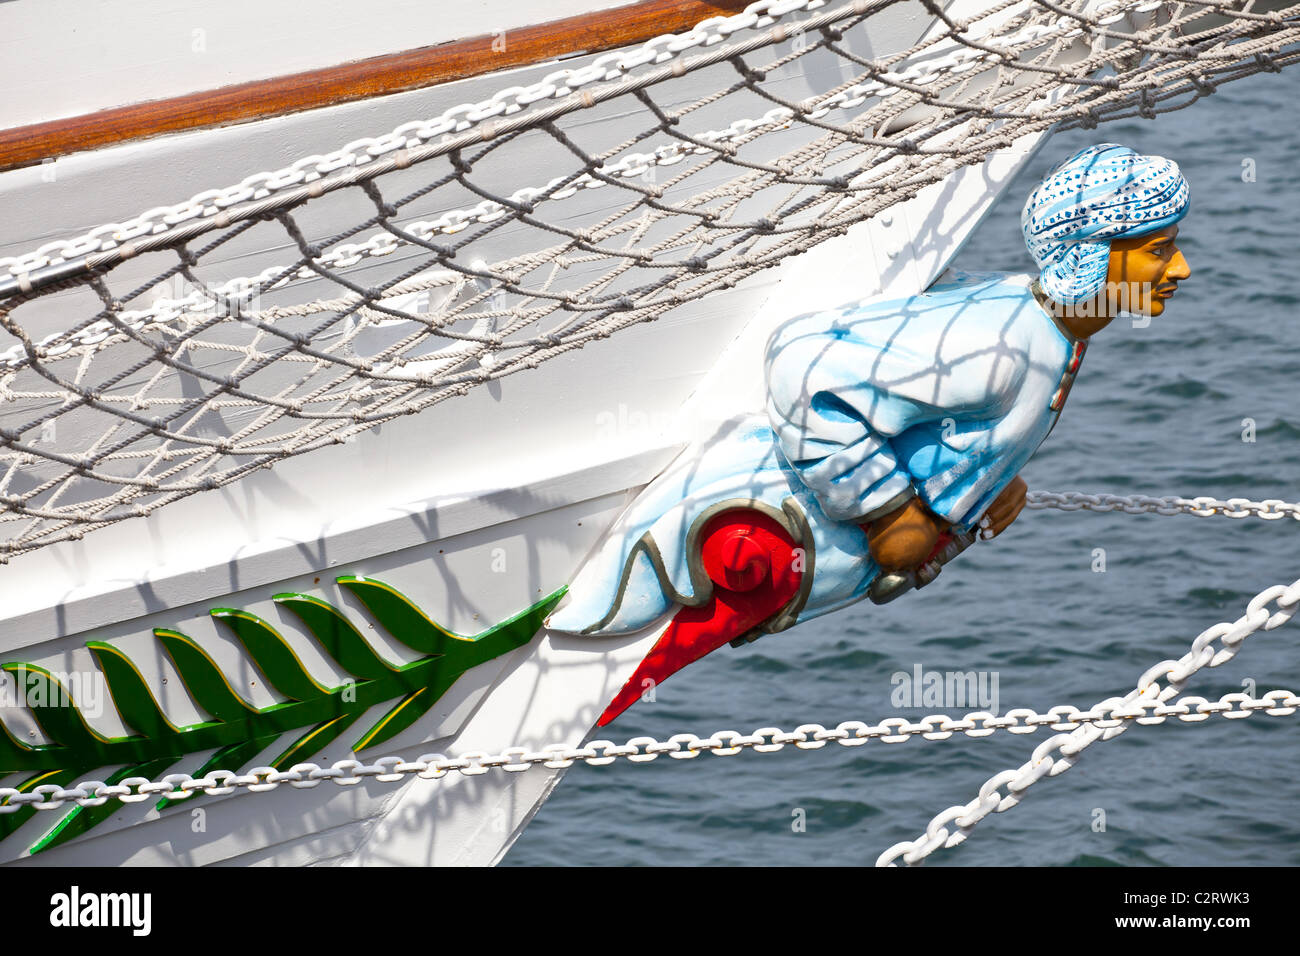 The figurehead on a tall ship berthed in Hartlepool for the tall ships race Stock Photo